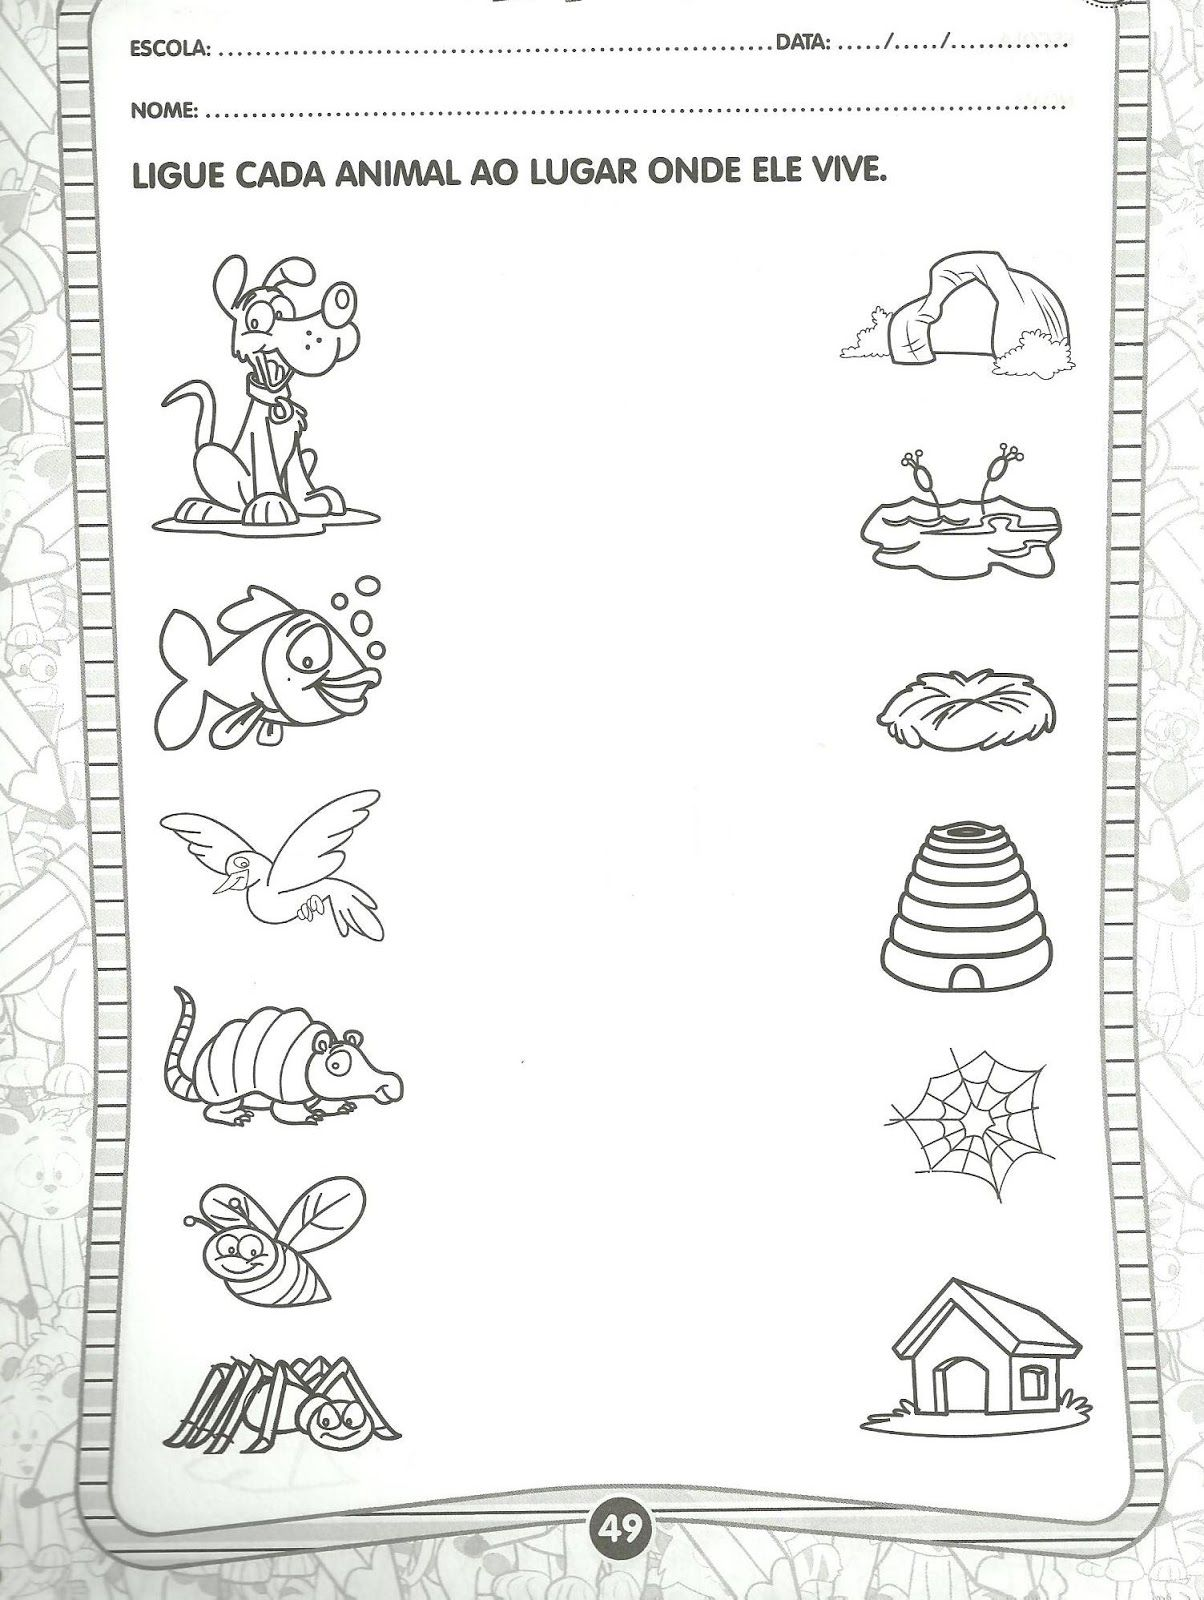 Worksheet About Farm Life